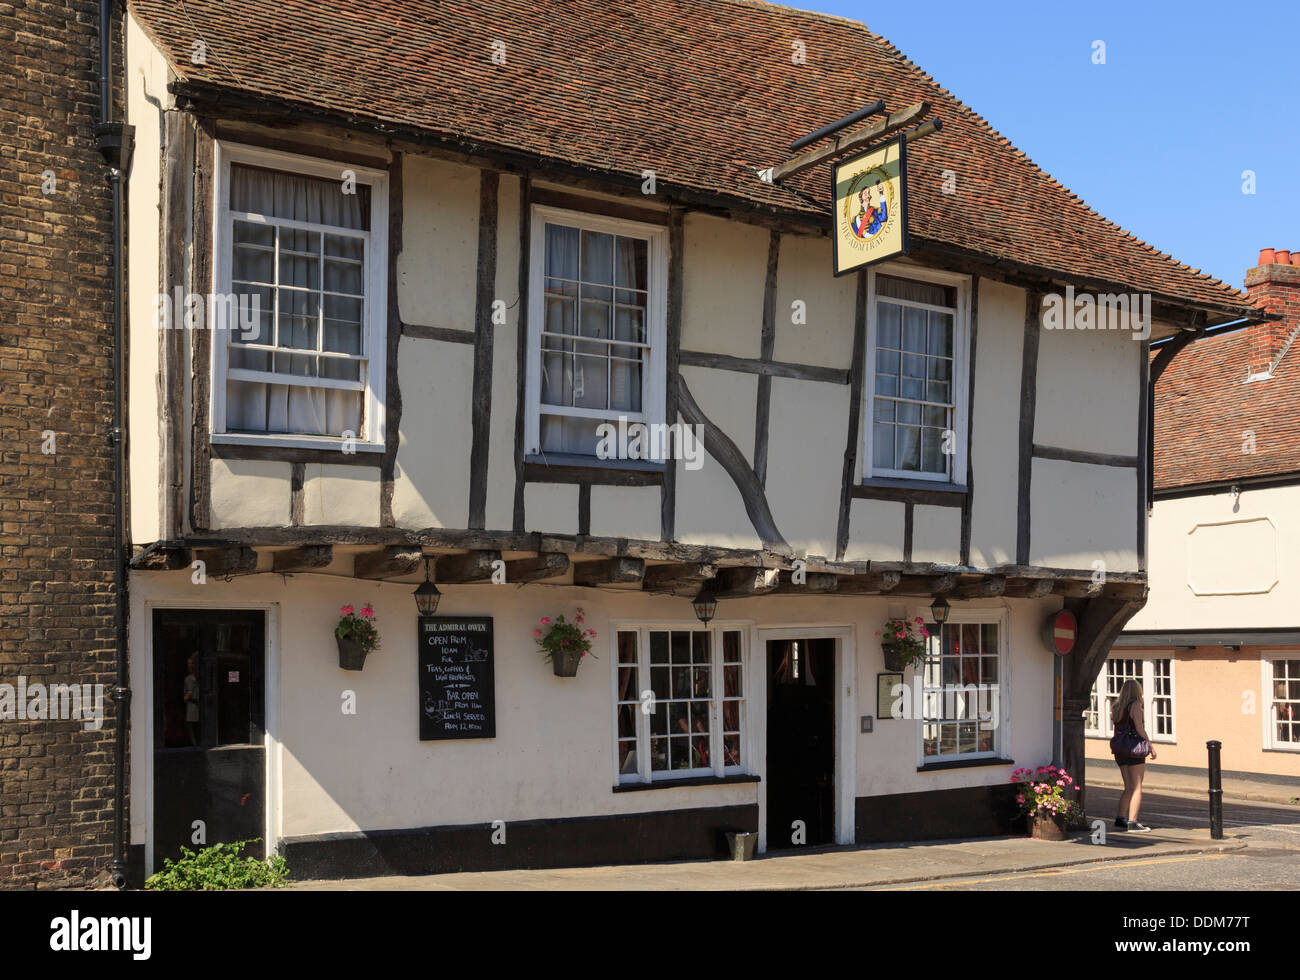 The Admiral Owen pub in 15th century timber-framed building in historic town of Sandwich, Kent, England, UK, Britain - Stock Image